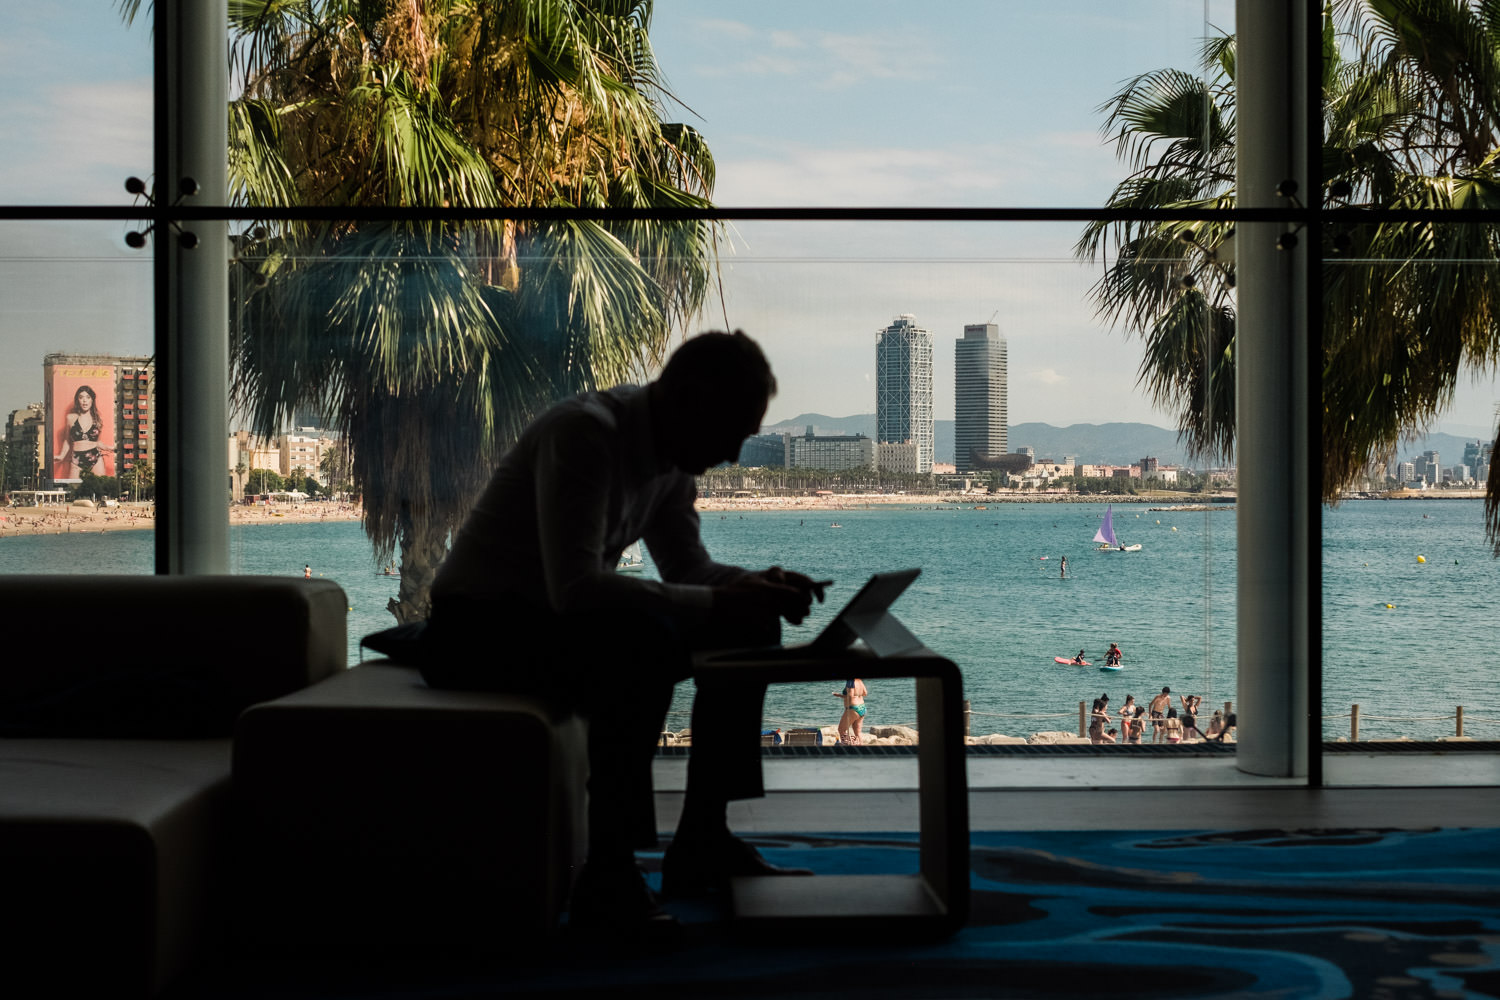 A photograph of a business man, working on a computer, at the W Hotel, during the KPMG conference event in Barcelona, Spain.